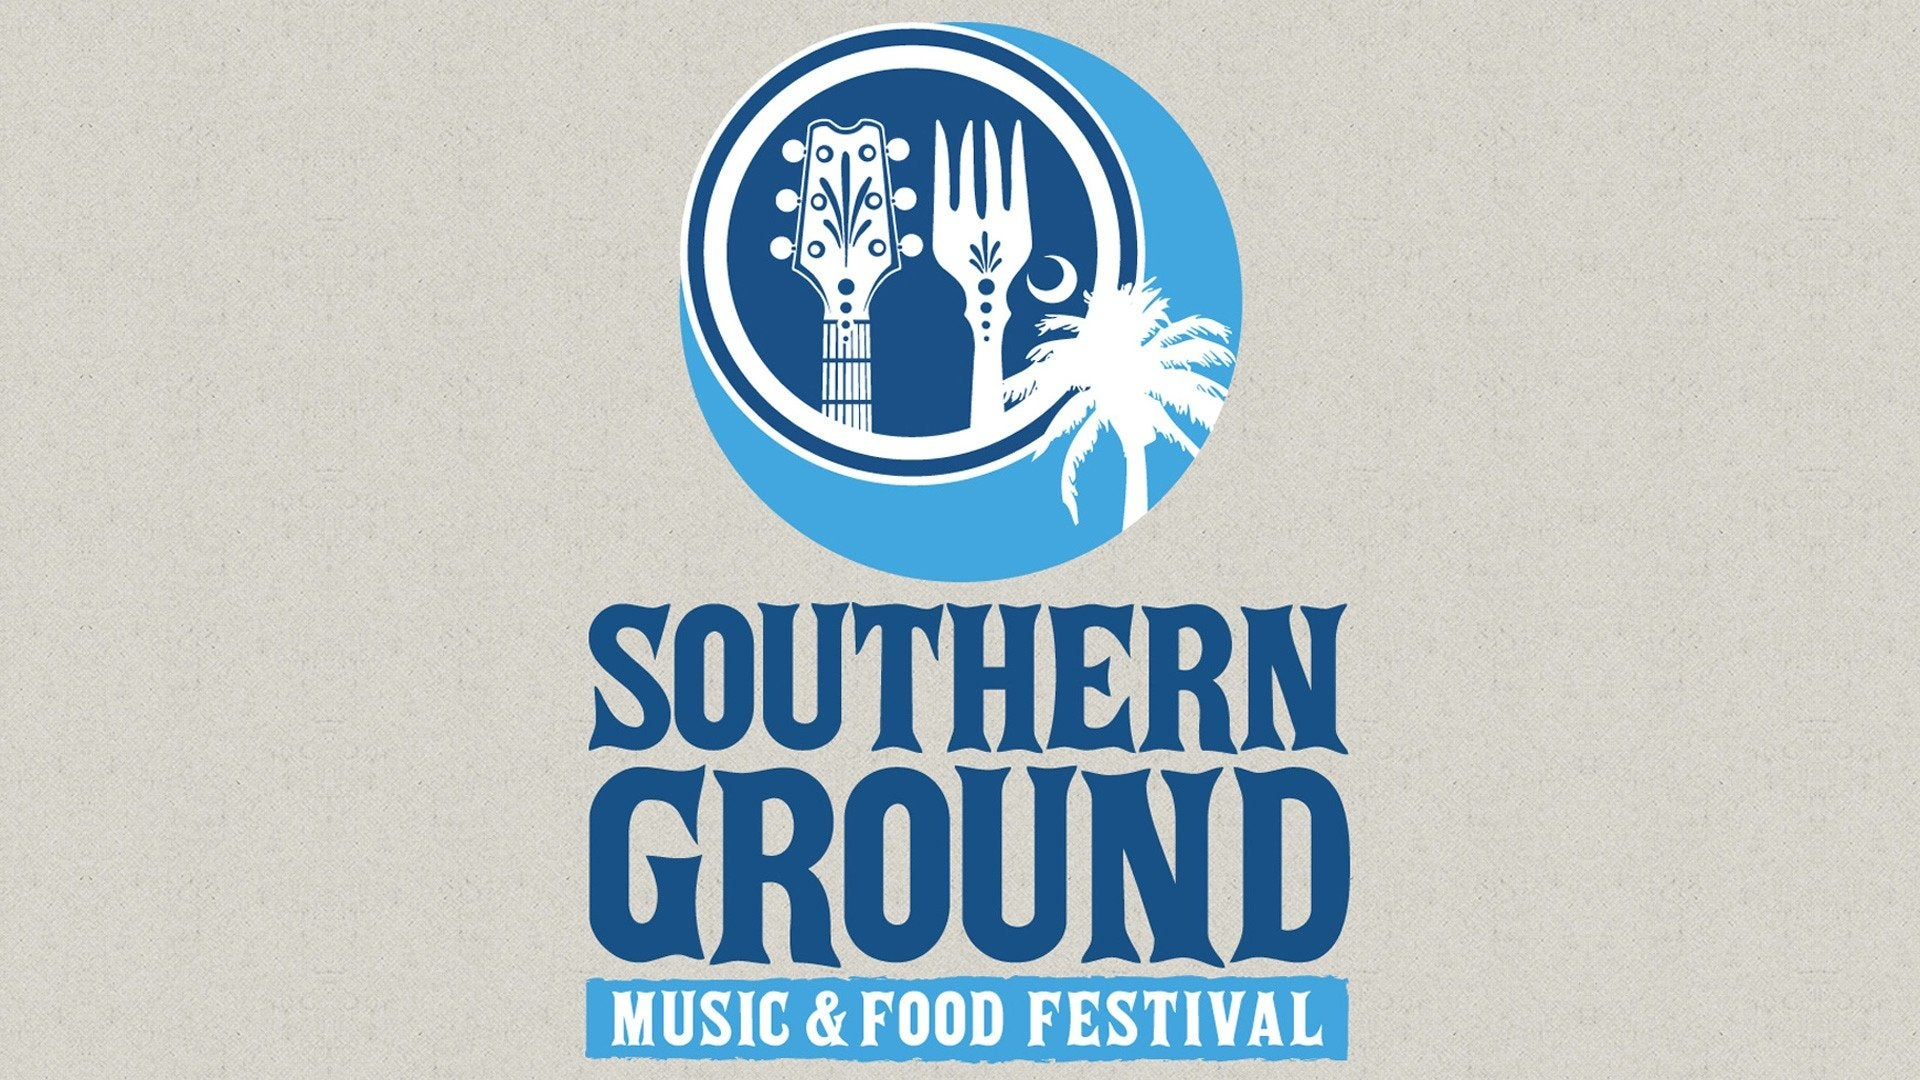 Zac Brown's Southern Ground Music & Food Festival